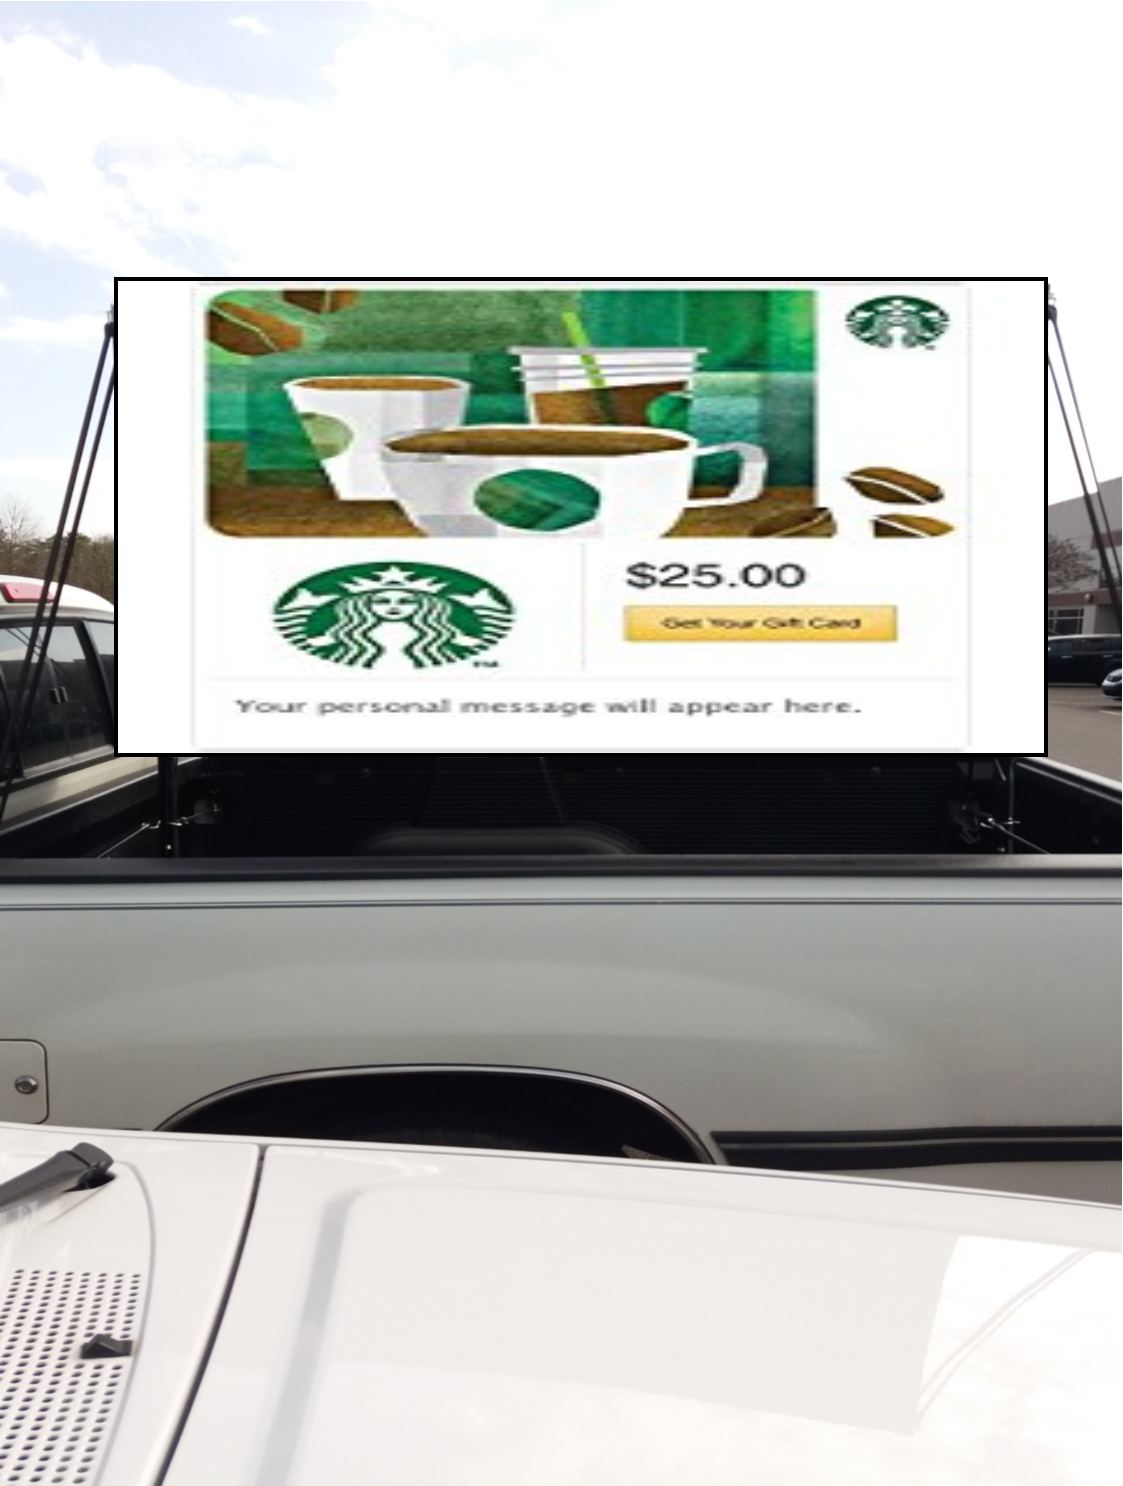 Starbucks Gift Cards Email Delivery. post by Main